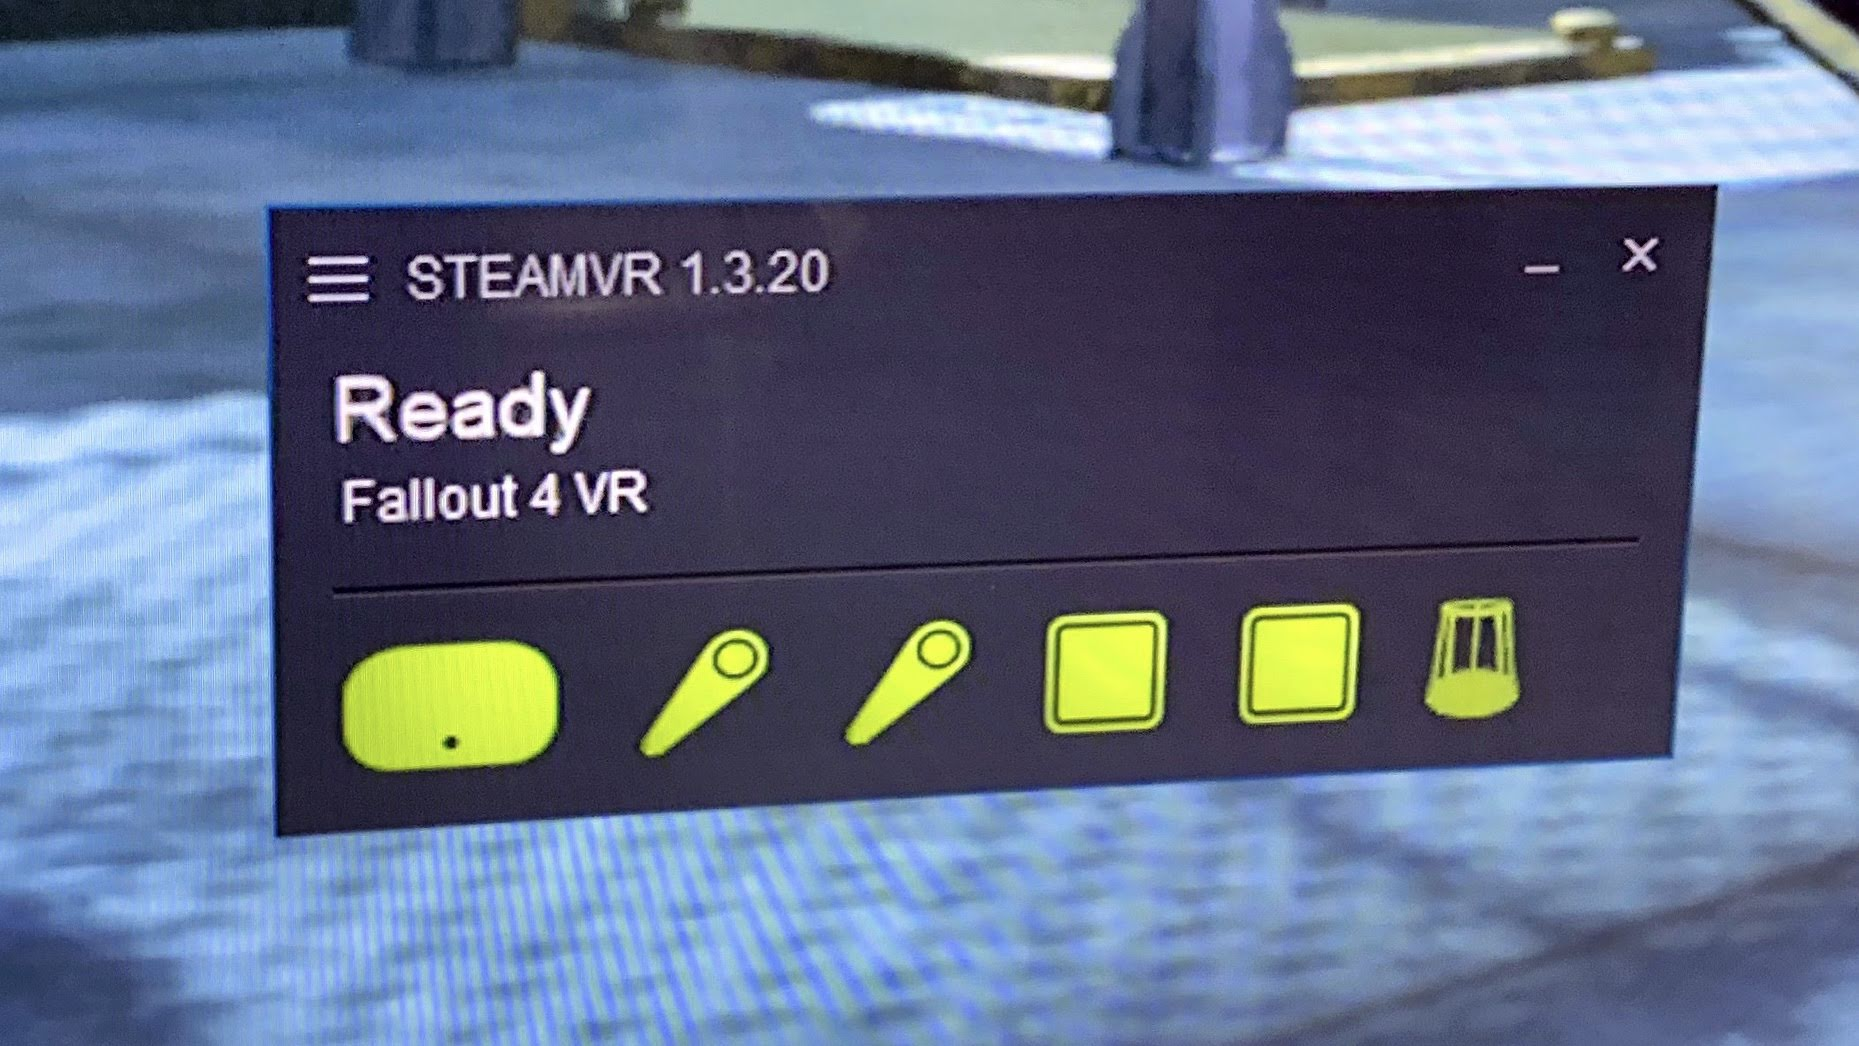 This is a link to the beta-version of our Steam VR interface. This allows any VR game on the Steam game platform to have the ROVR as an additional input device alongside hand controllers. This means any HTC Vive or Oculus Rift VR game that runs in Steam can have a ROVR providing forward motion within the game